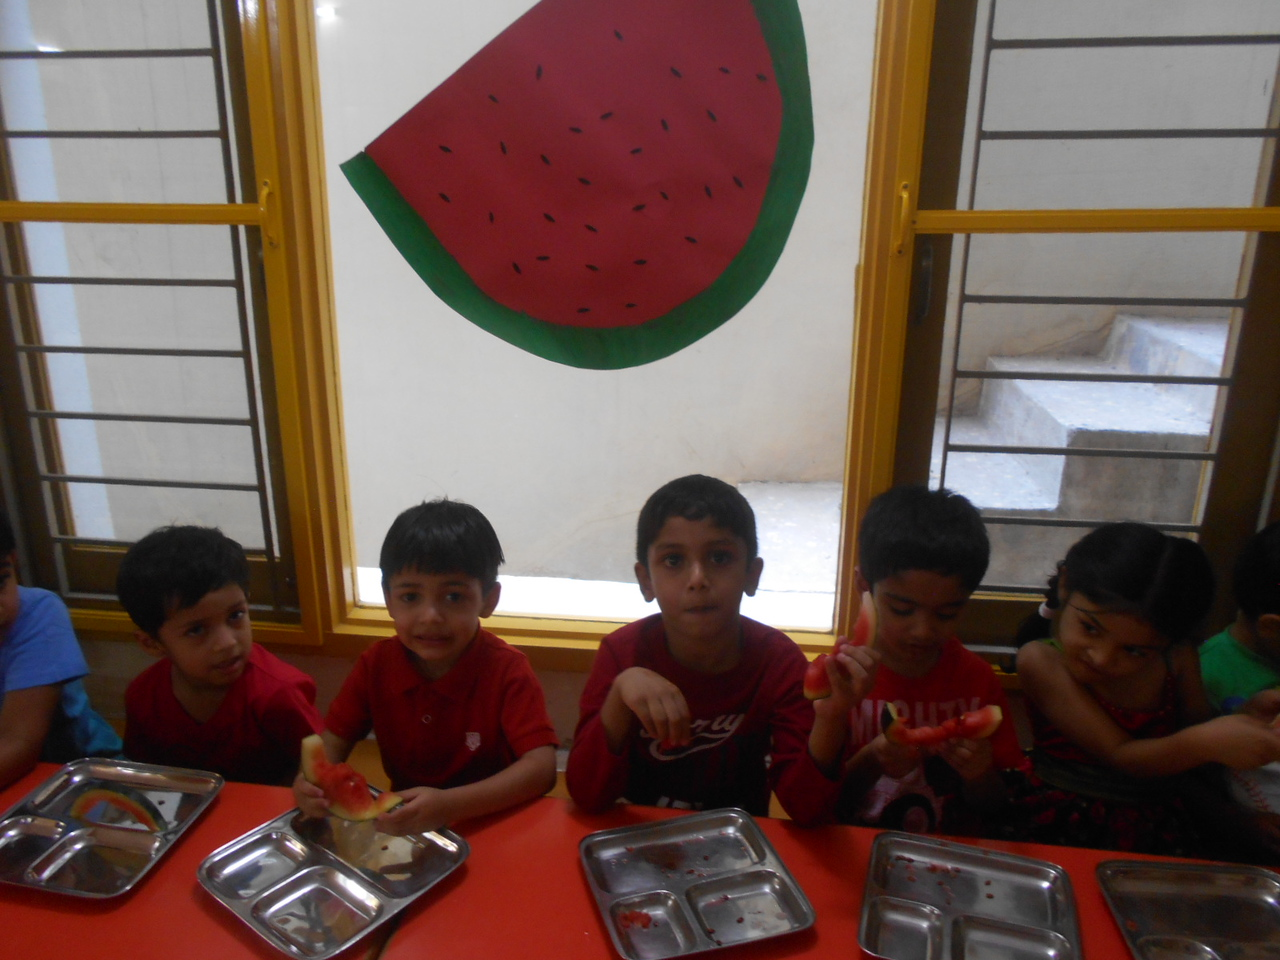 CHILDREN EATING WATERMELON DURING WATERMELON PARTY